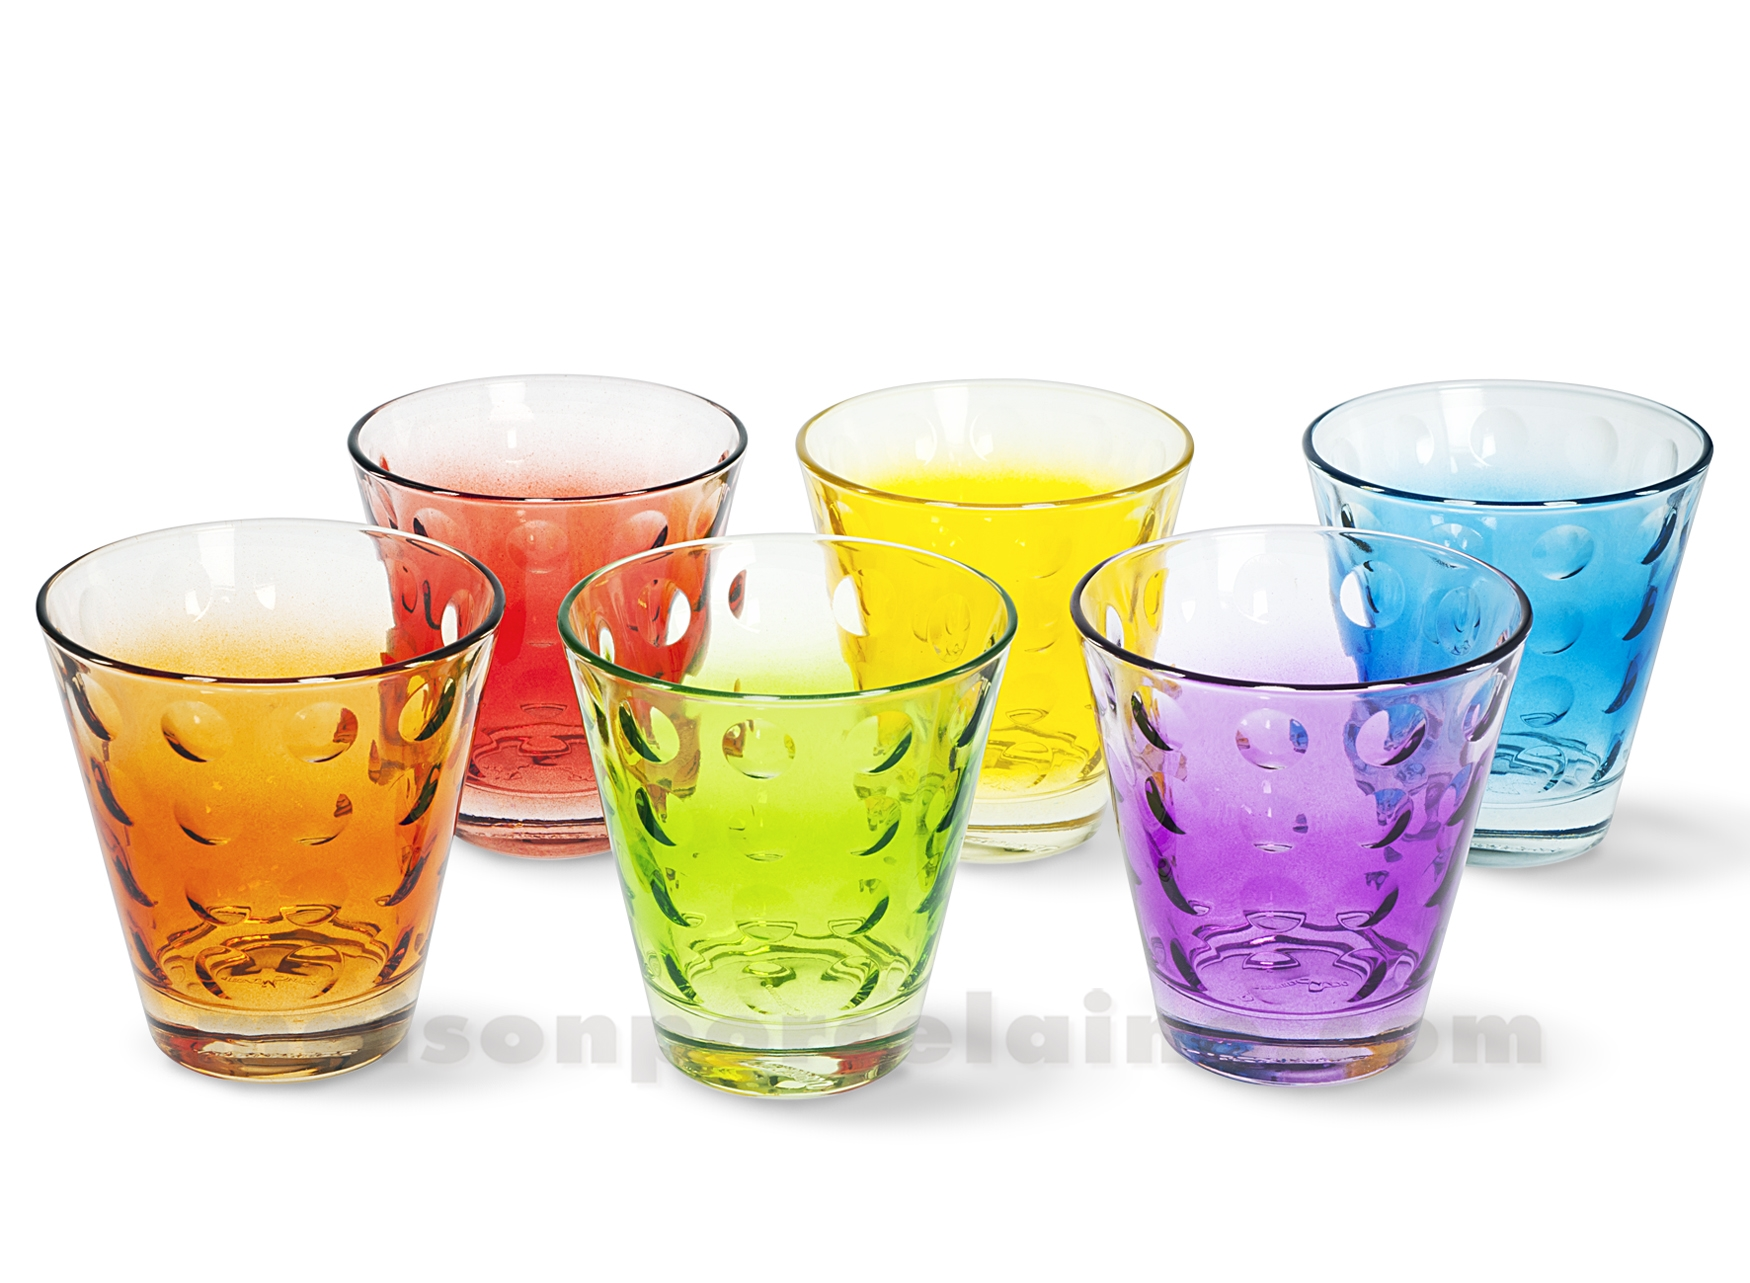 Gobelet A Eau Gobelet Bas Eau Whisky Optic 9x8 5 25cl Set De 6 Verres